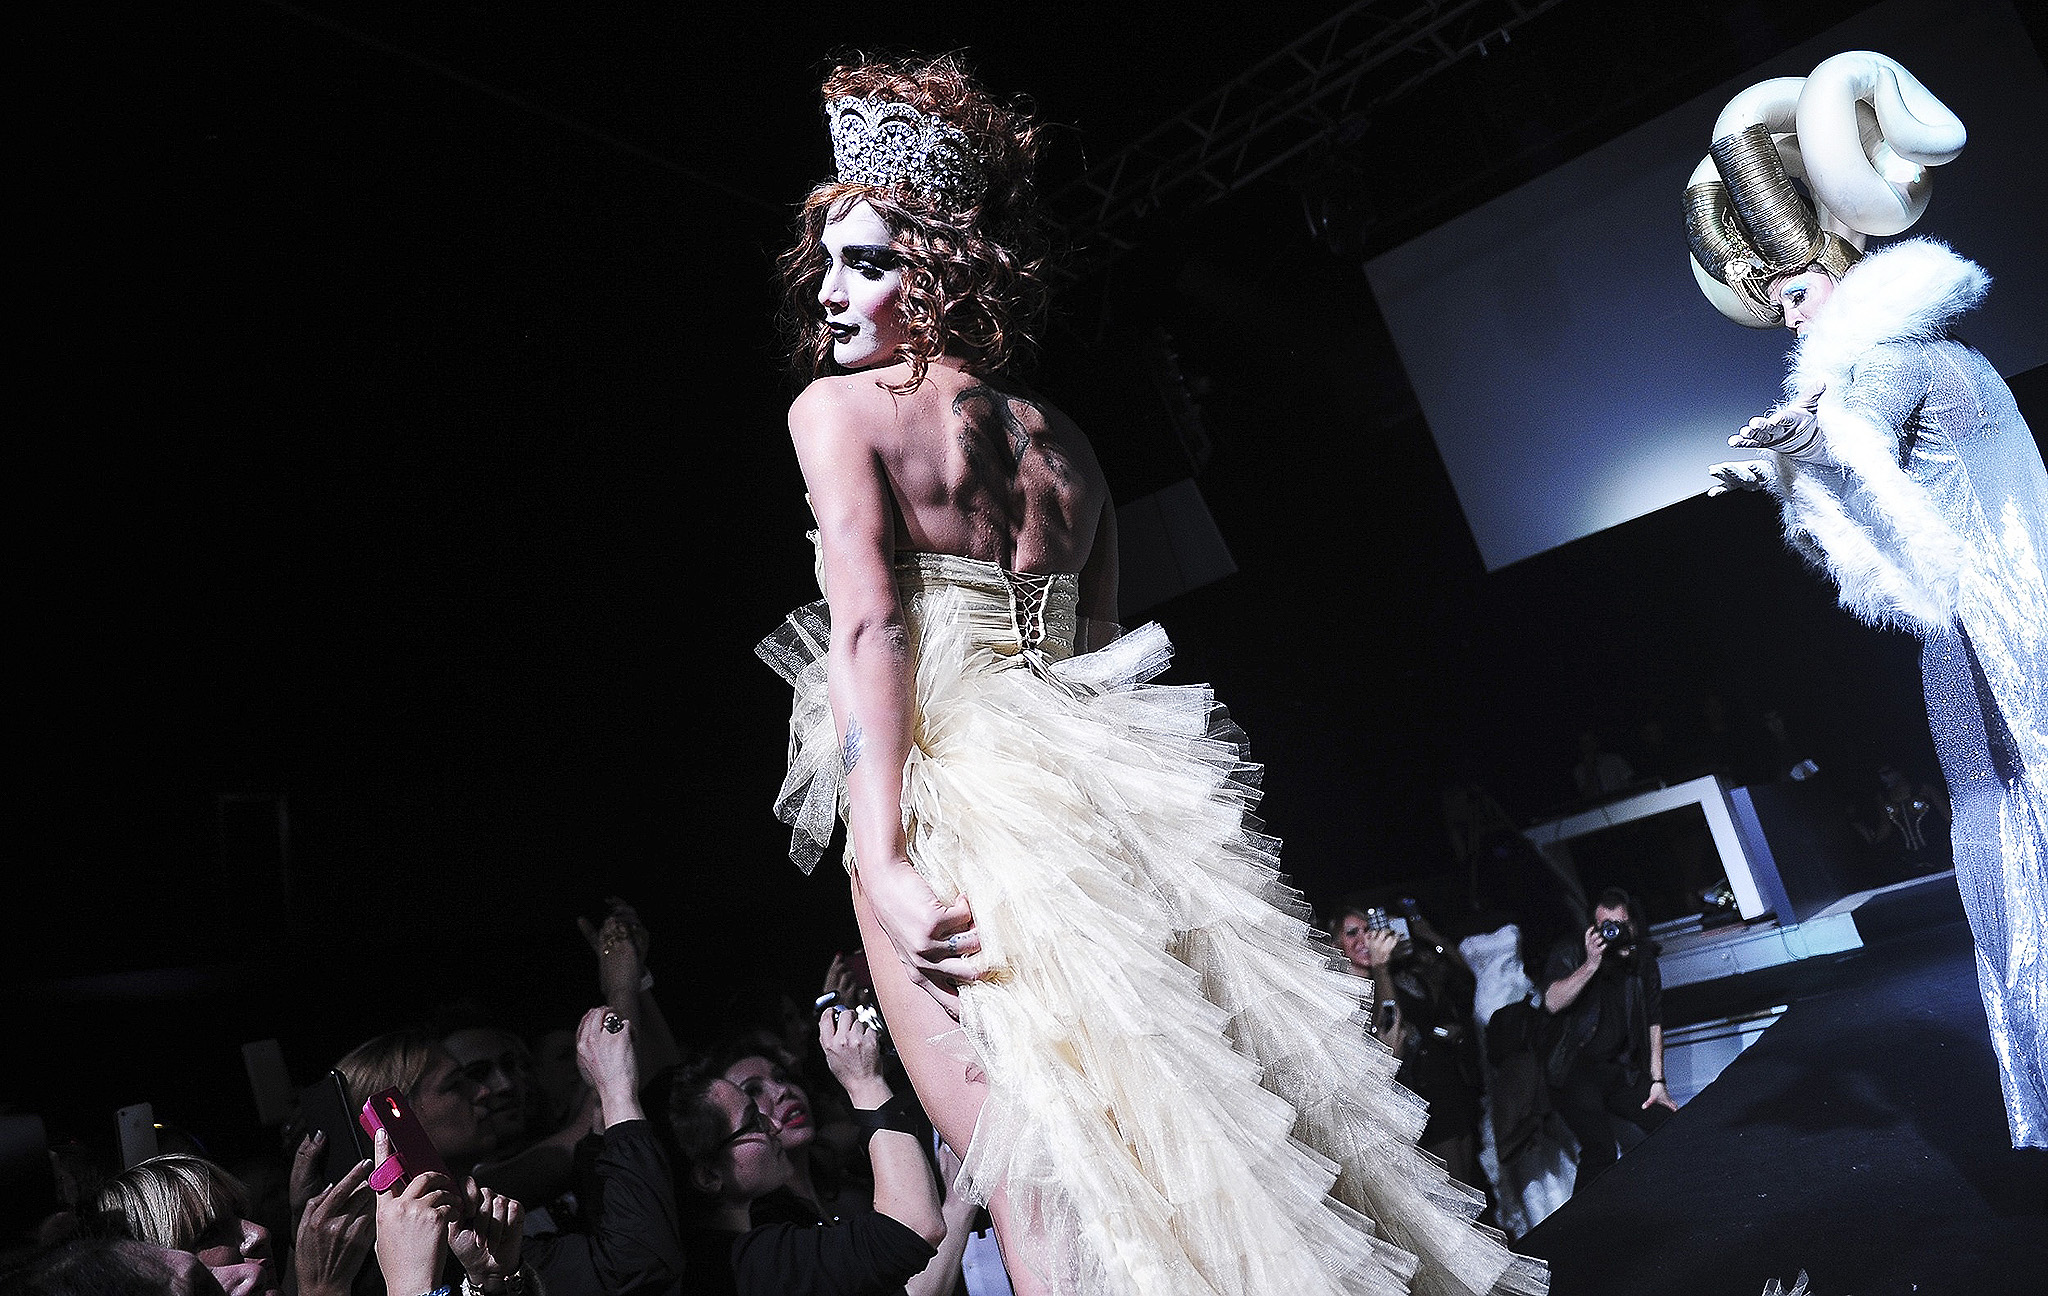 Participants present creations during the country's first ever transgender/transsexual fashion show in Istanbul. The fashion show was organized by Istanbul's LGBTI (lesbian, gay, bisexual, transgender, intersex) community to raise funds to improve the facilities of a local LGBTI shelter.